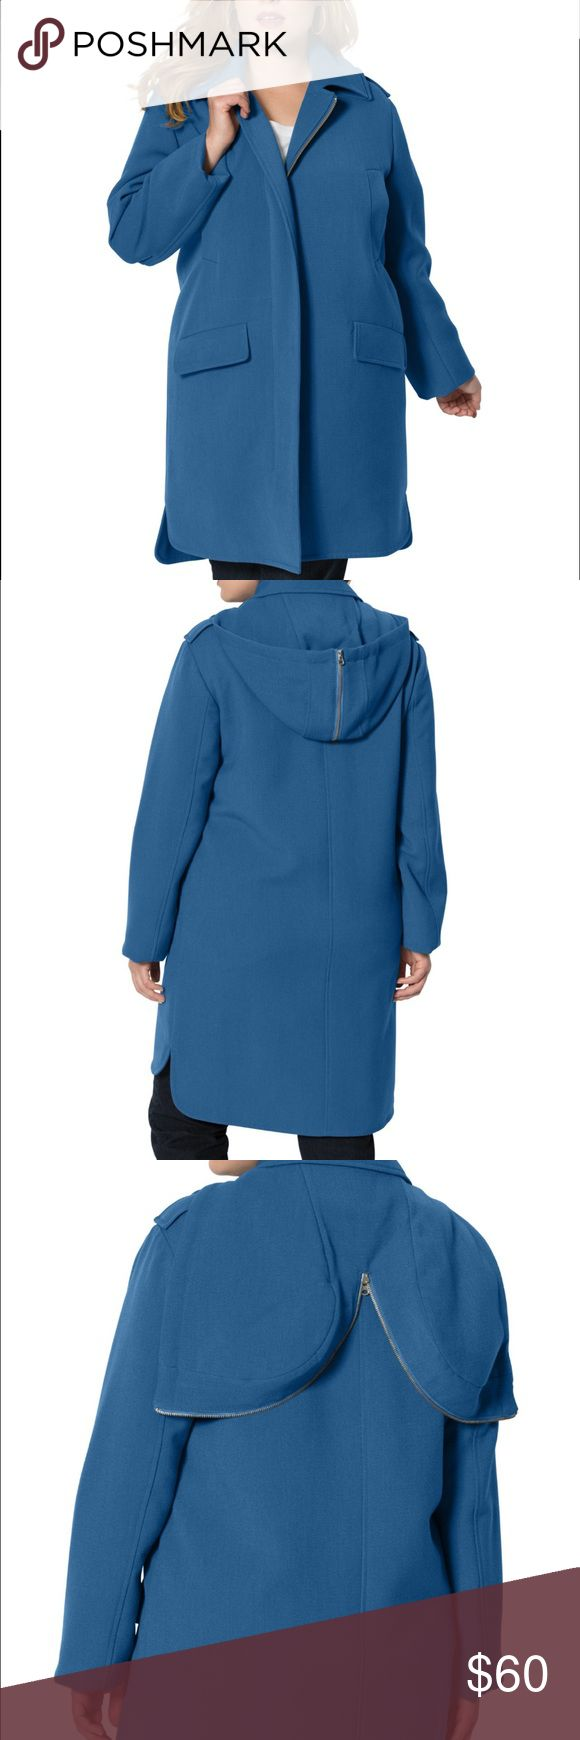 """Women's Heavy rain coat This raincoat is just the thing for keeping dry this season.  relaxed silhouette detachable satin hood with drawstring pointed collar zip front long sleeves bonded satin trim welt pocket at chest flap pockets at waist lined hem drops to about 38"""" polyester/rayon/spandex, dry clean, imported Brand new. Size 14/16 Jackets & Coats Trench Coats"""